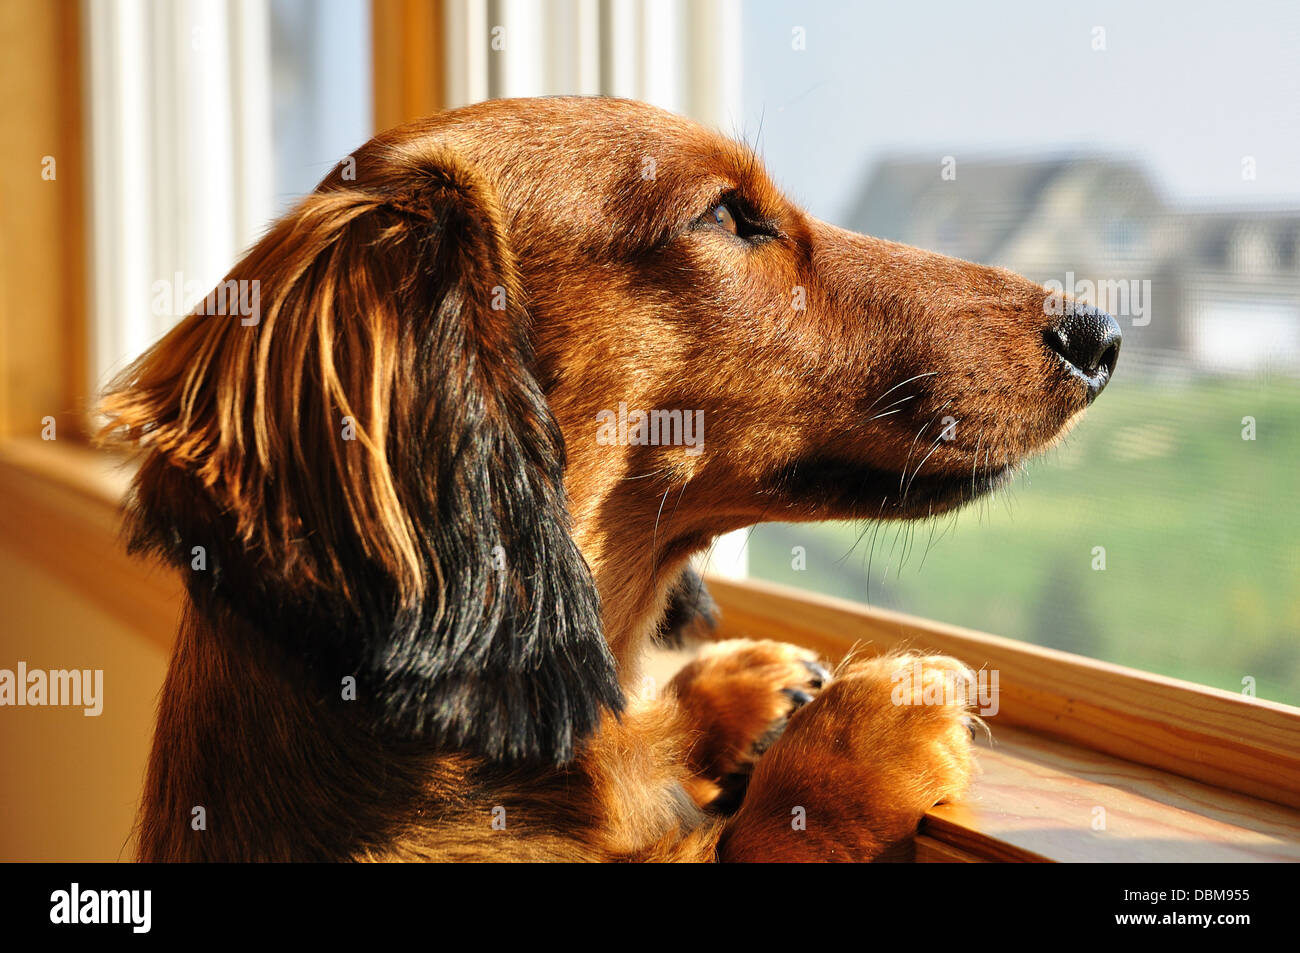 Dachshund dog waiting / looking out of the window - Stock Image